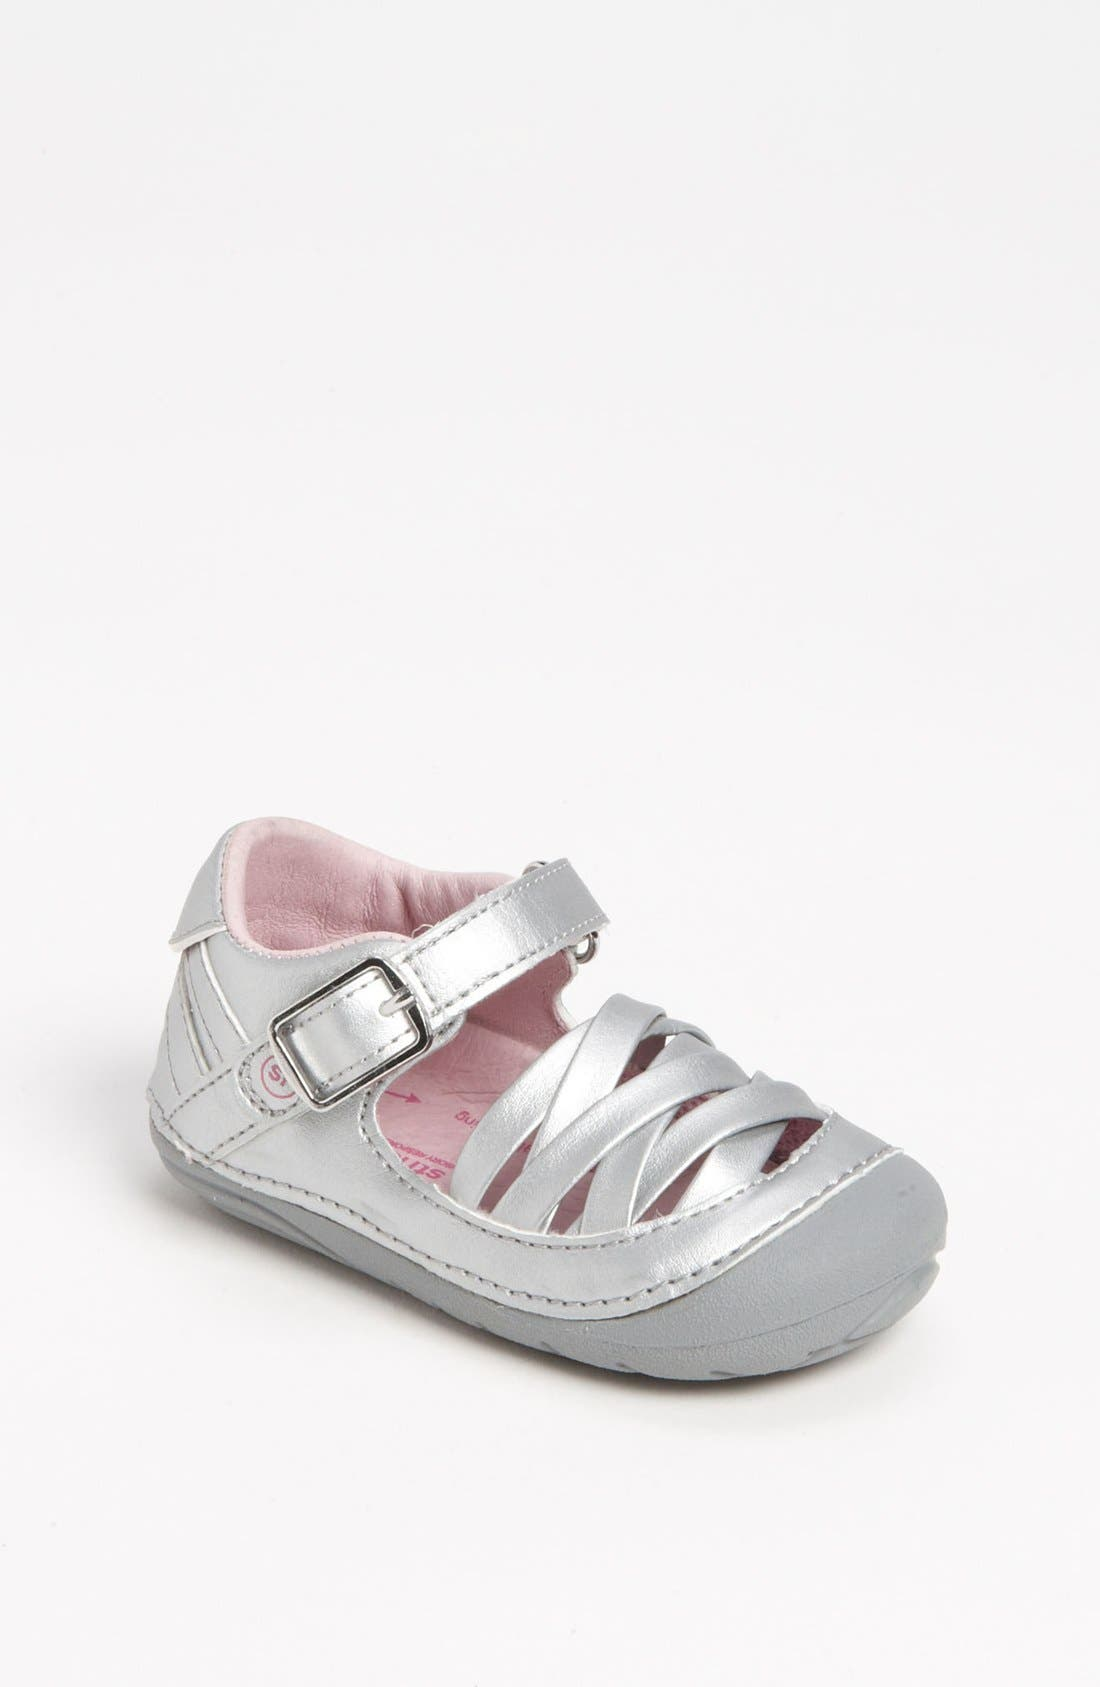 Main Image - Stride Rite 'Bubbles' Mary Jane (Baby & Walker)